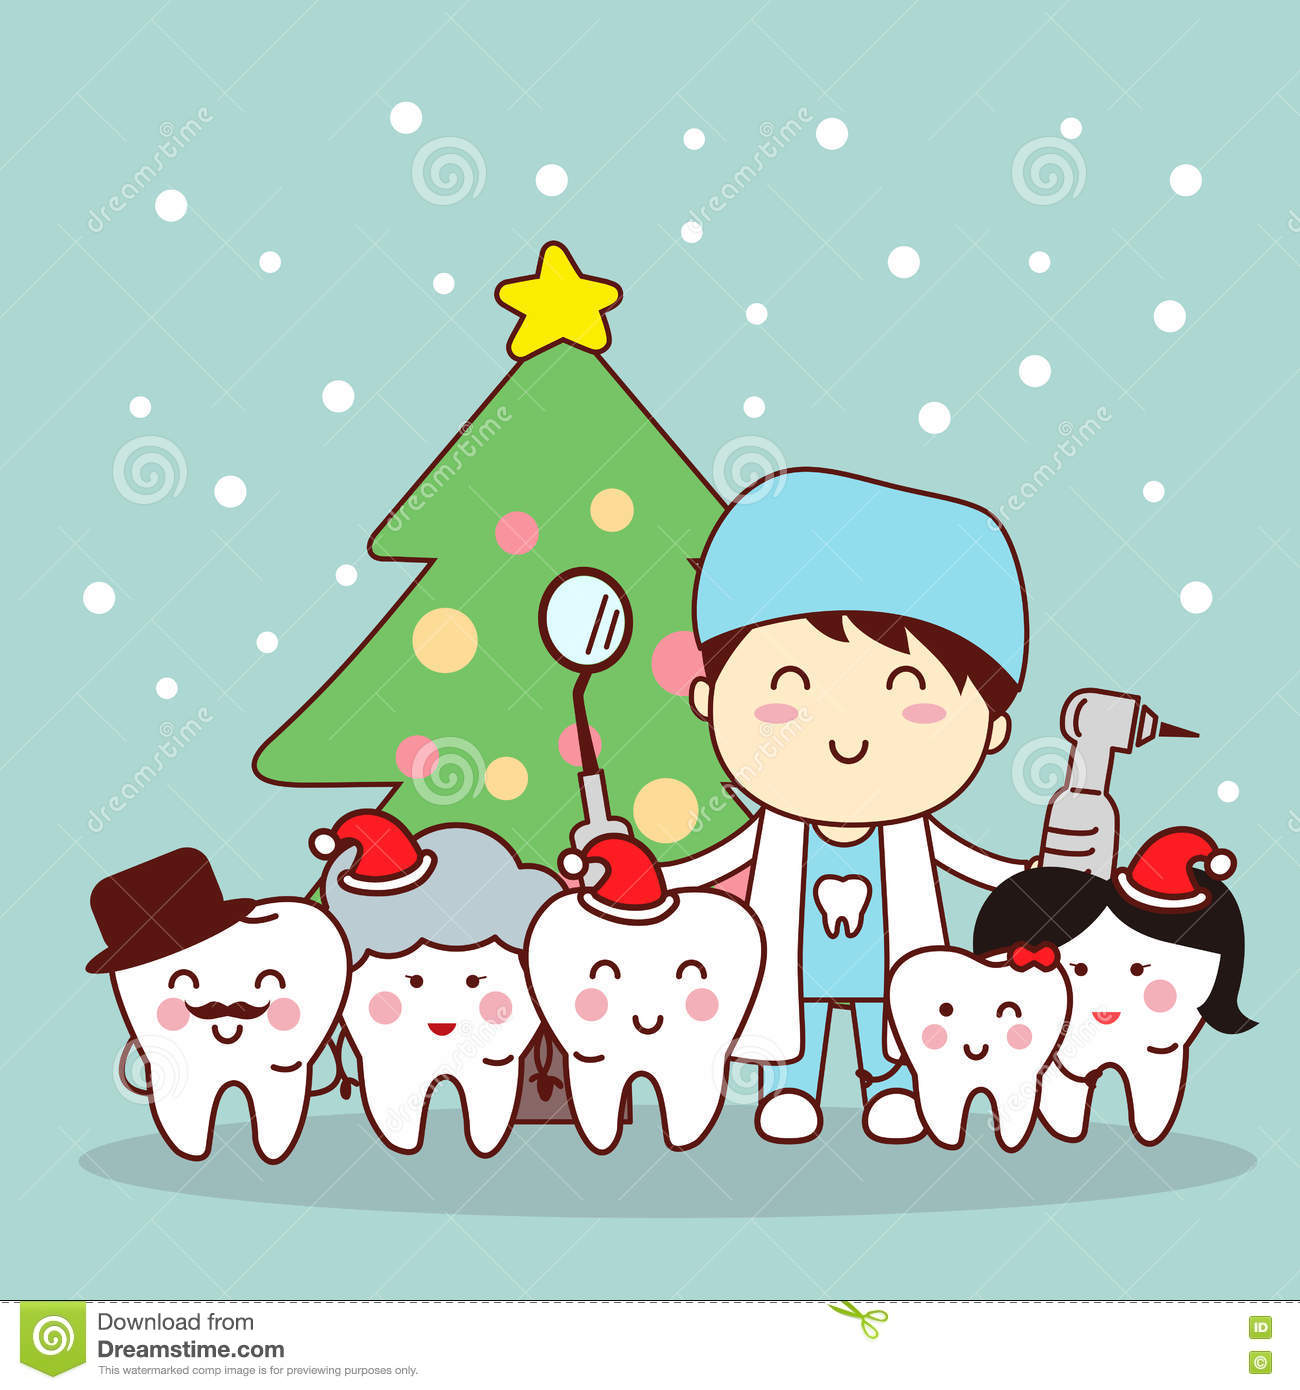 Christmas And Snow With Tooth Stock Vector - Illustration of claus ...